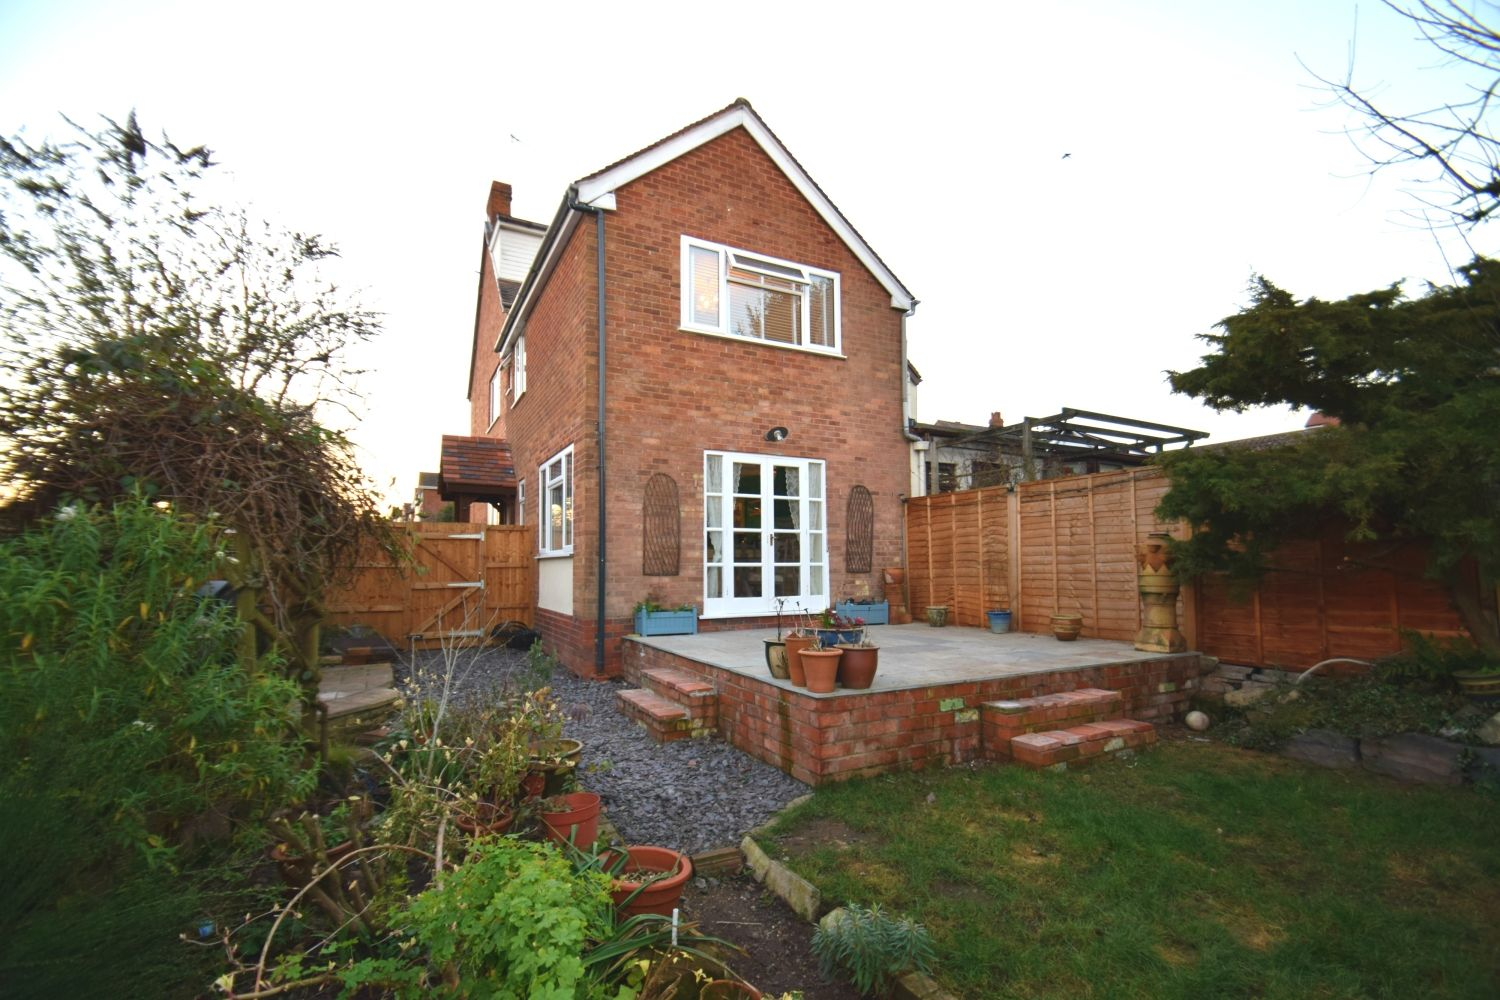 4 bed semi-detached for sale in Upland Grove, Bromsgrove, B61 29